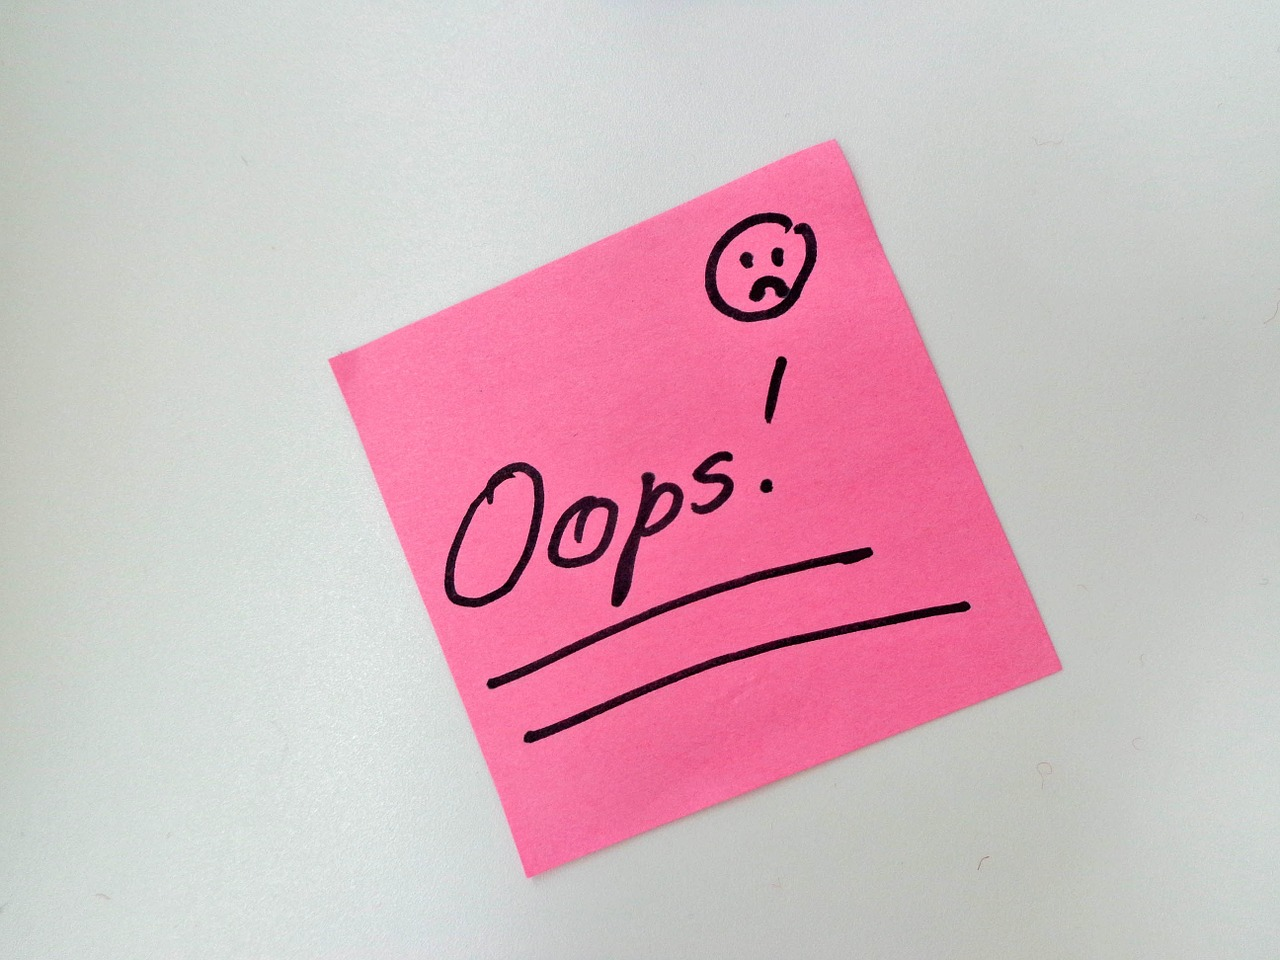 Oops,surprise,sticky note,pink,smiley - free image from needpix.com